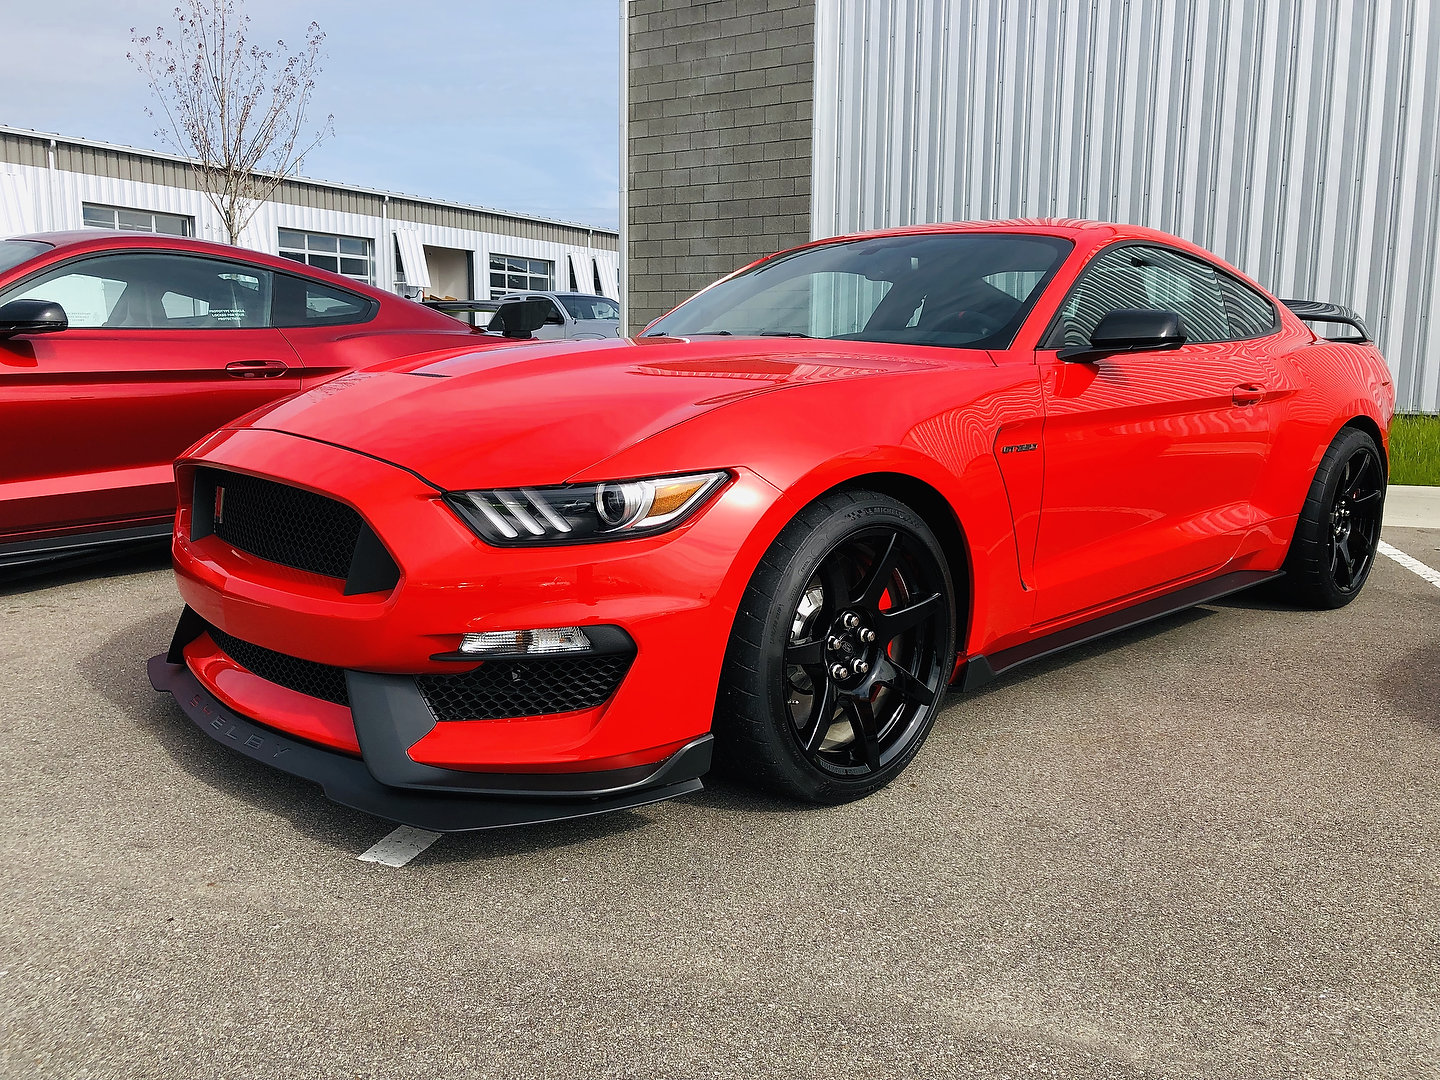 2019 Ford Mustang Shelby GT350 First Drive Review: More of ...